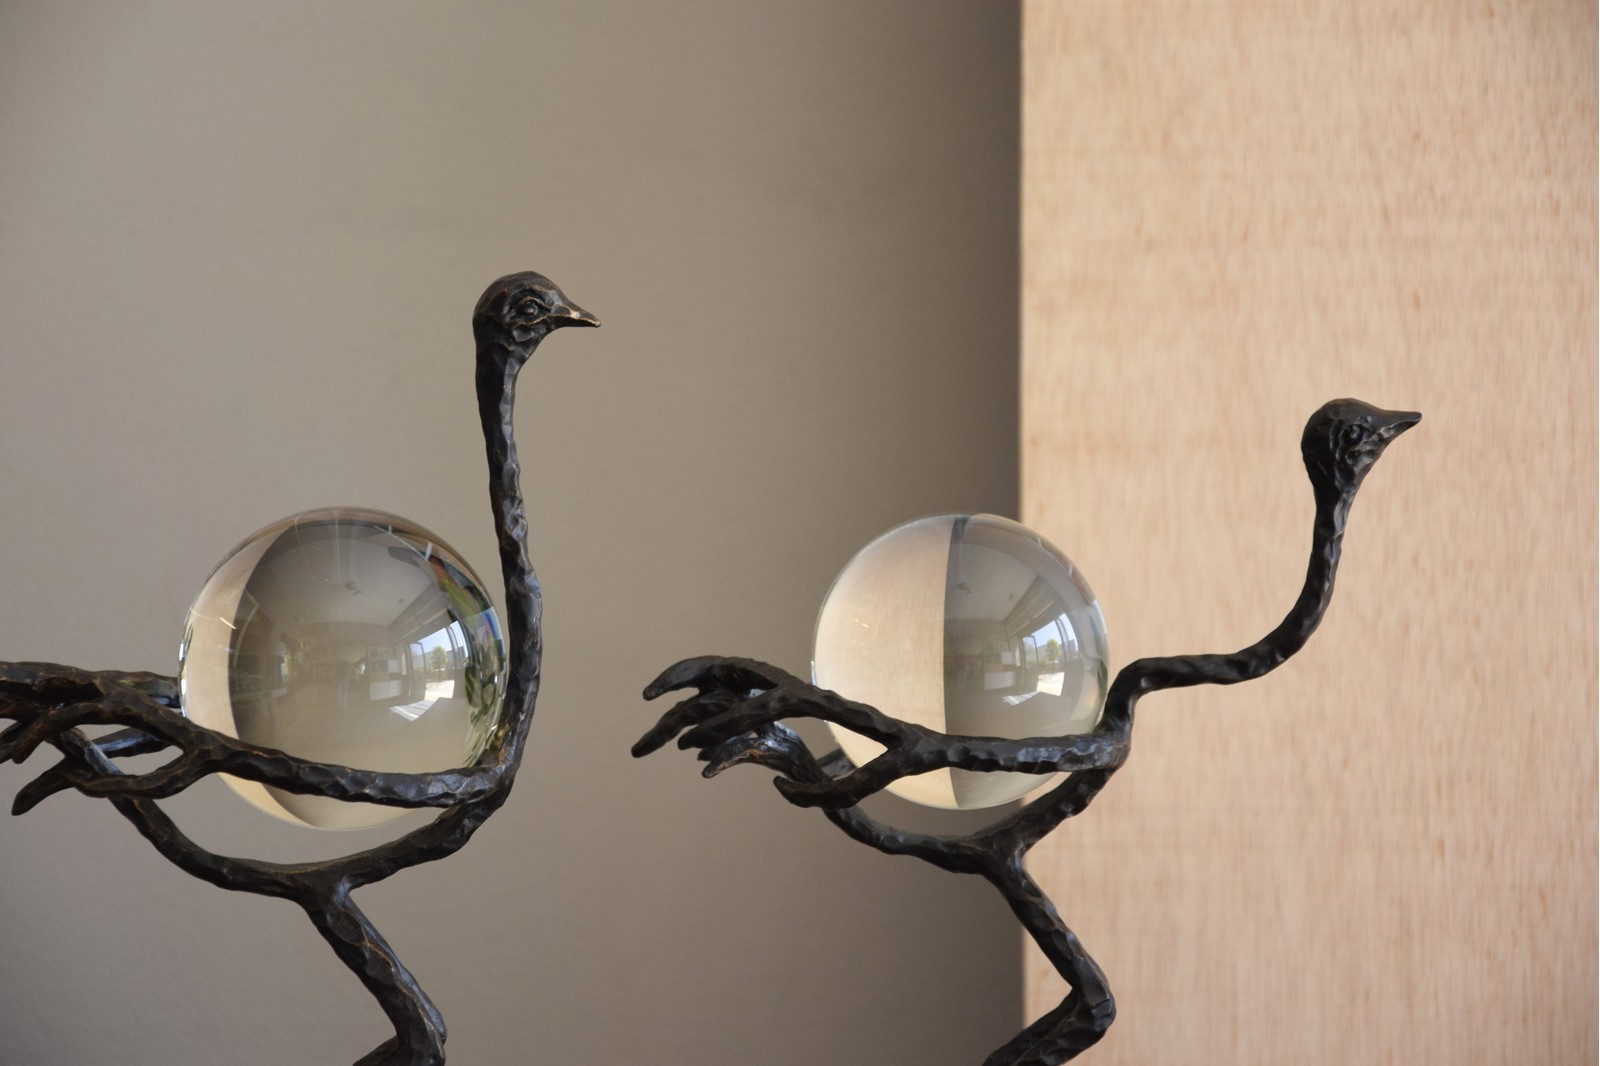 OSTRICH COLLECTION. METAL AND GLASS SCULPTURE